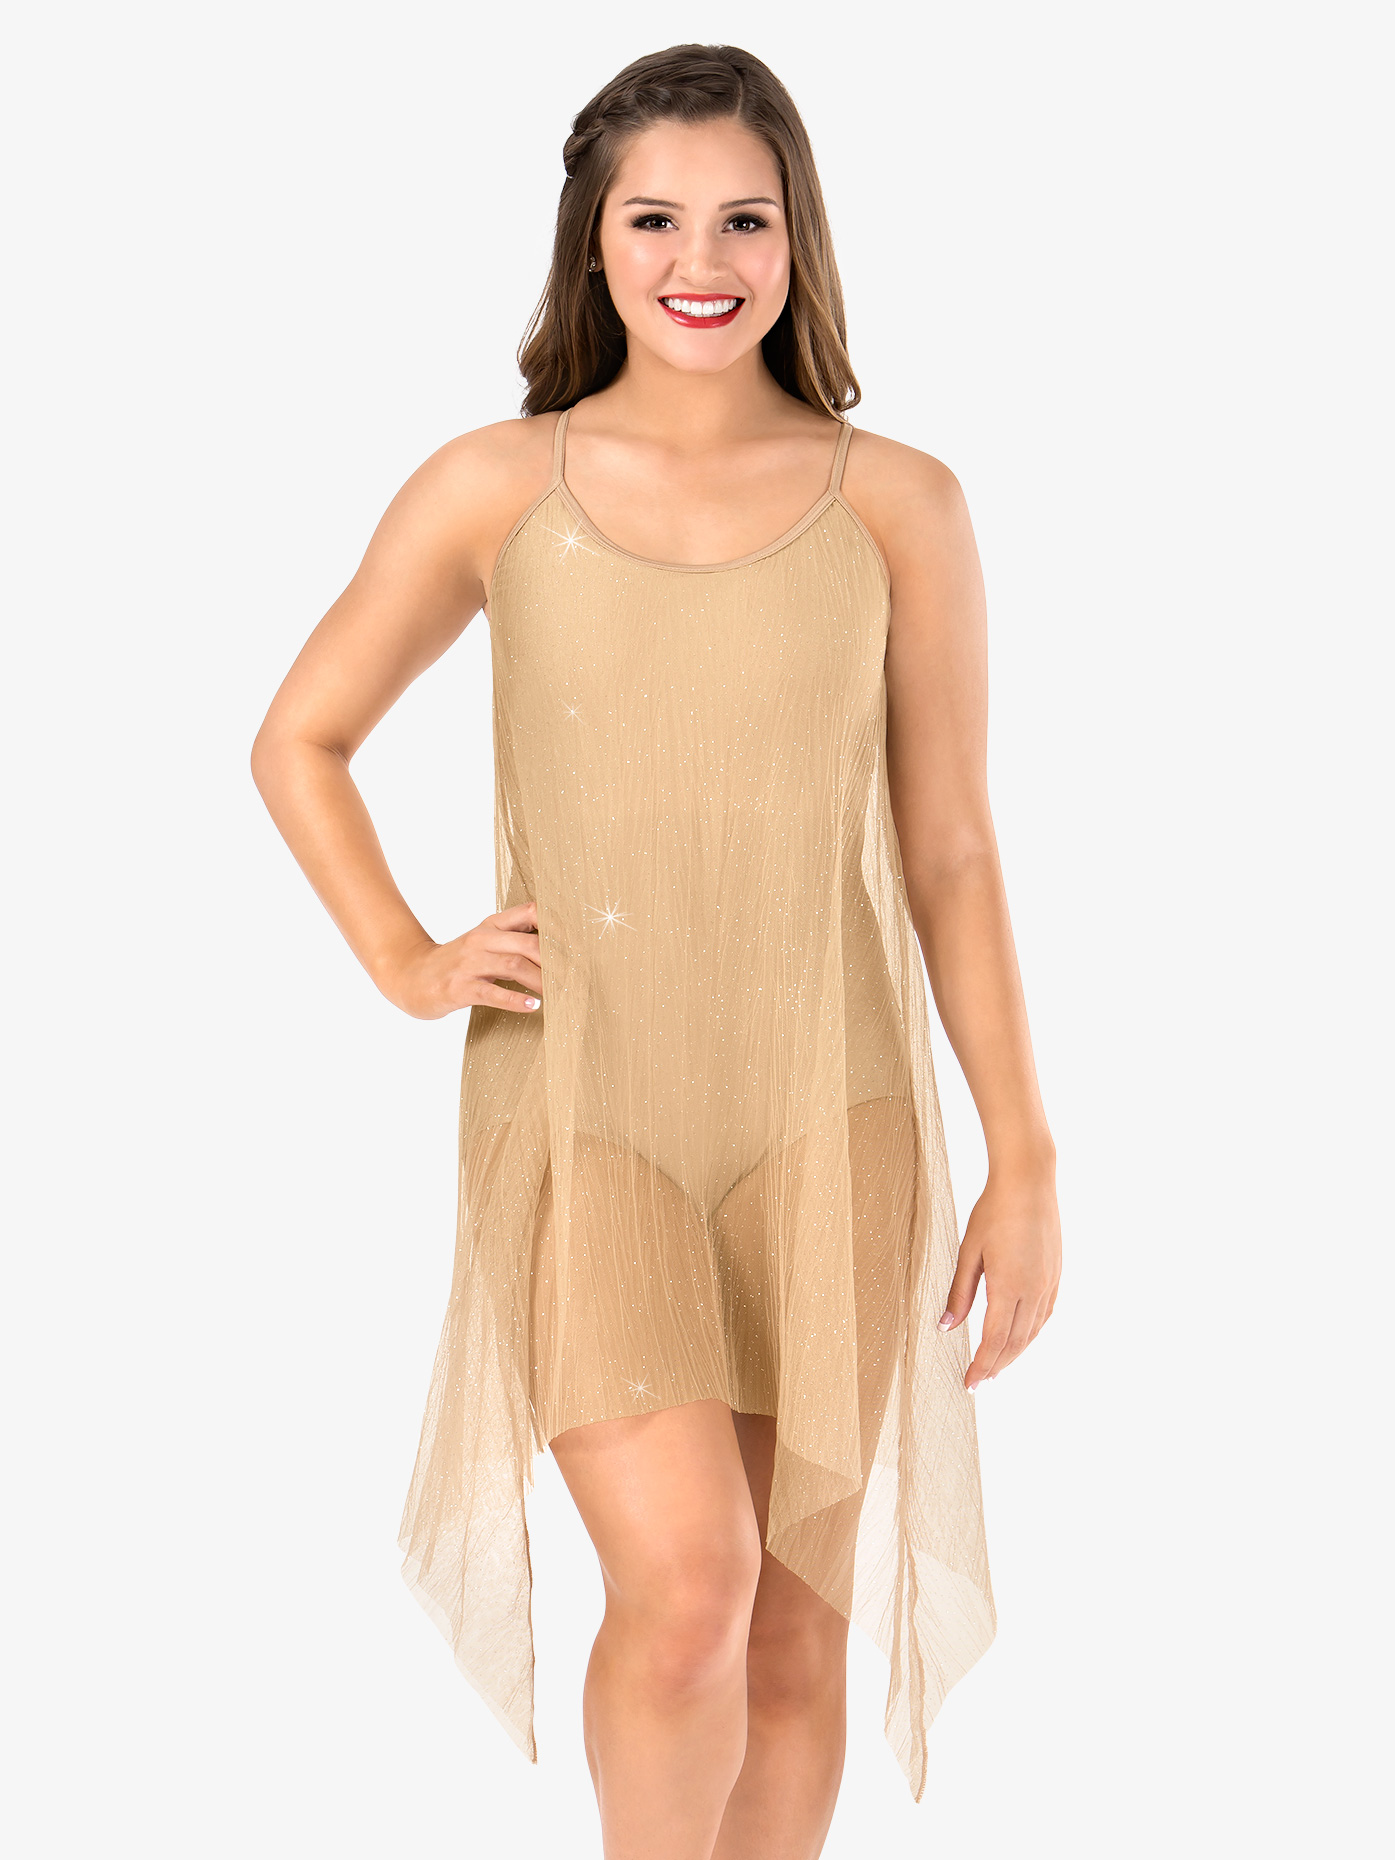 Elisse by Double Platinum Womens Glitter Mesh Camisole Performance Dress N7473